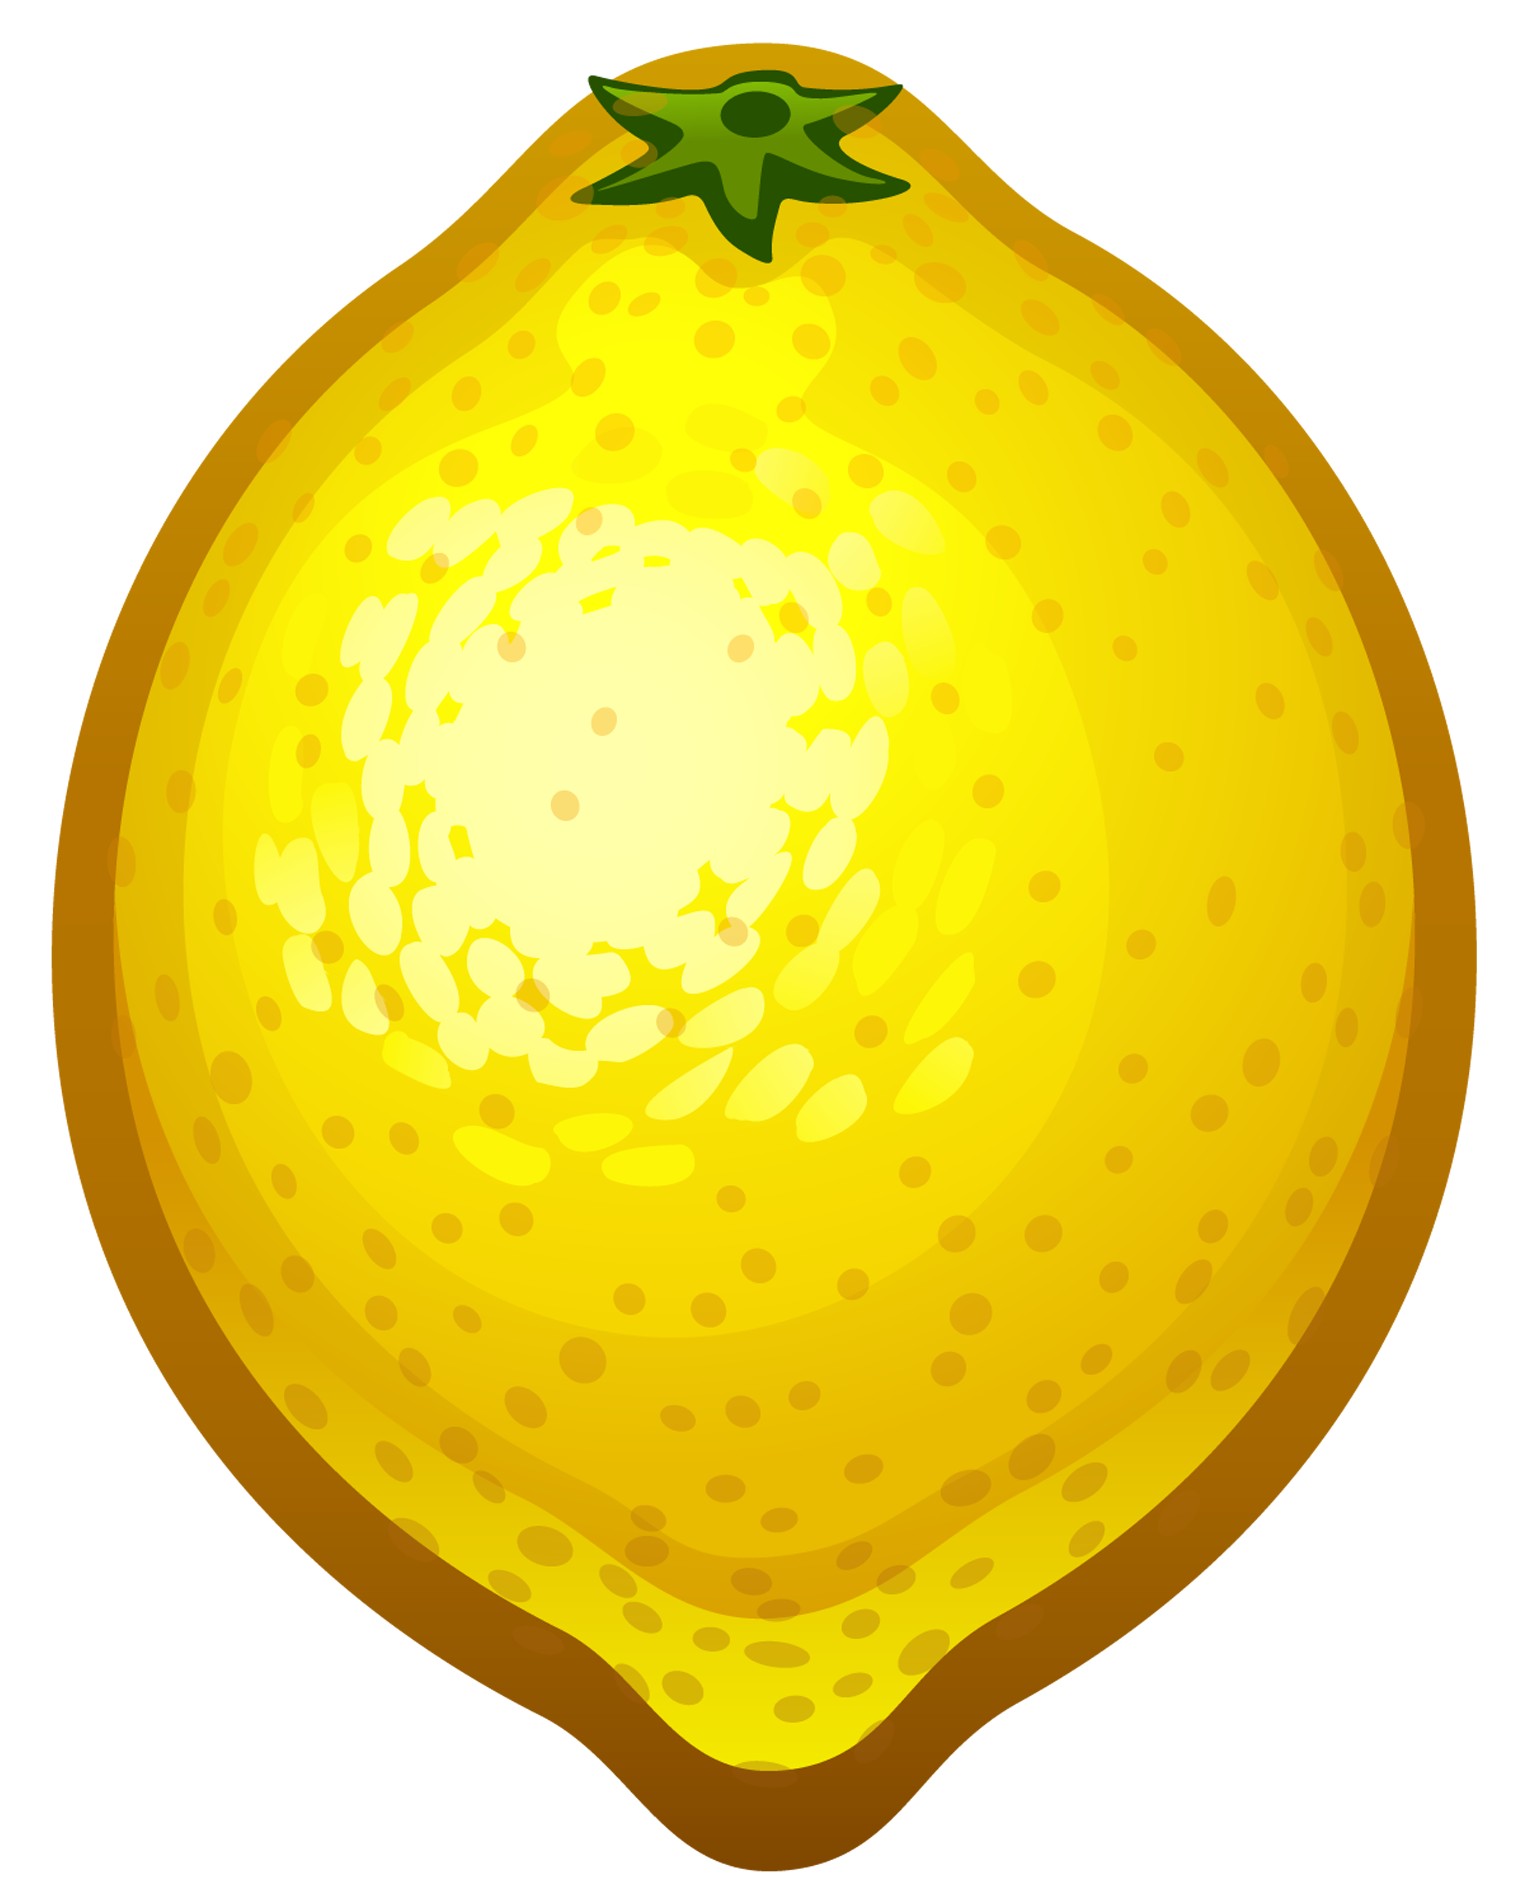 Lemon clipart yellow. Pin by pngsector on